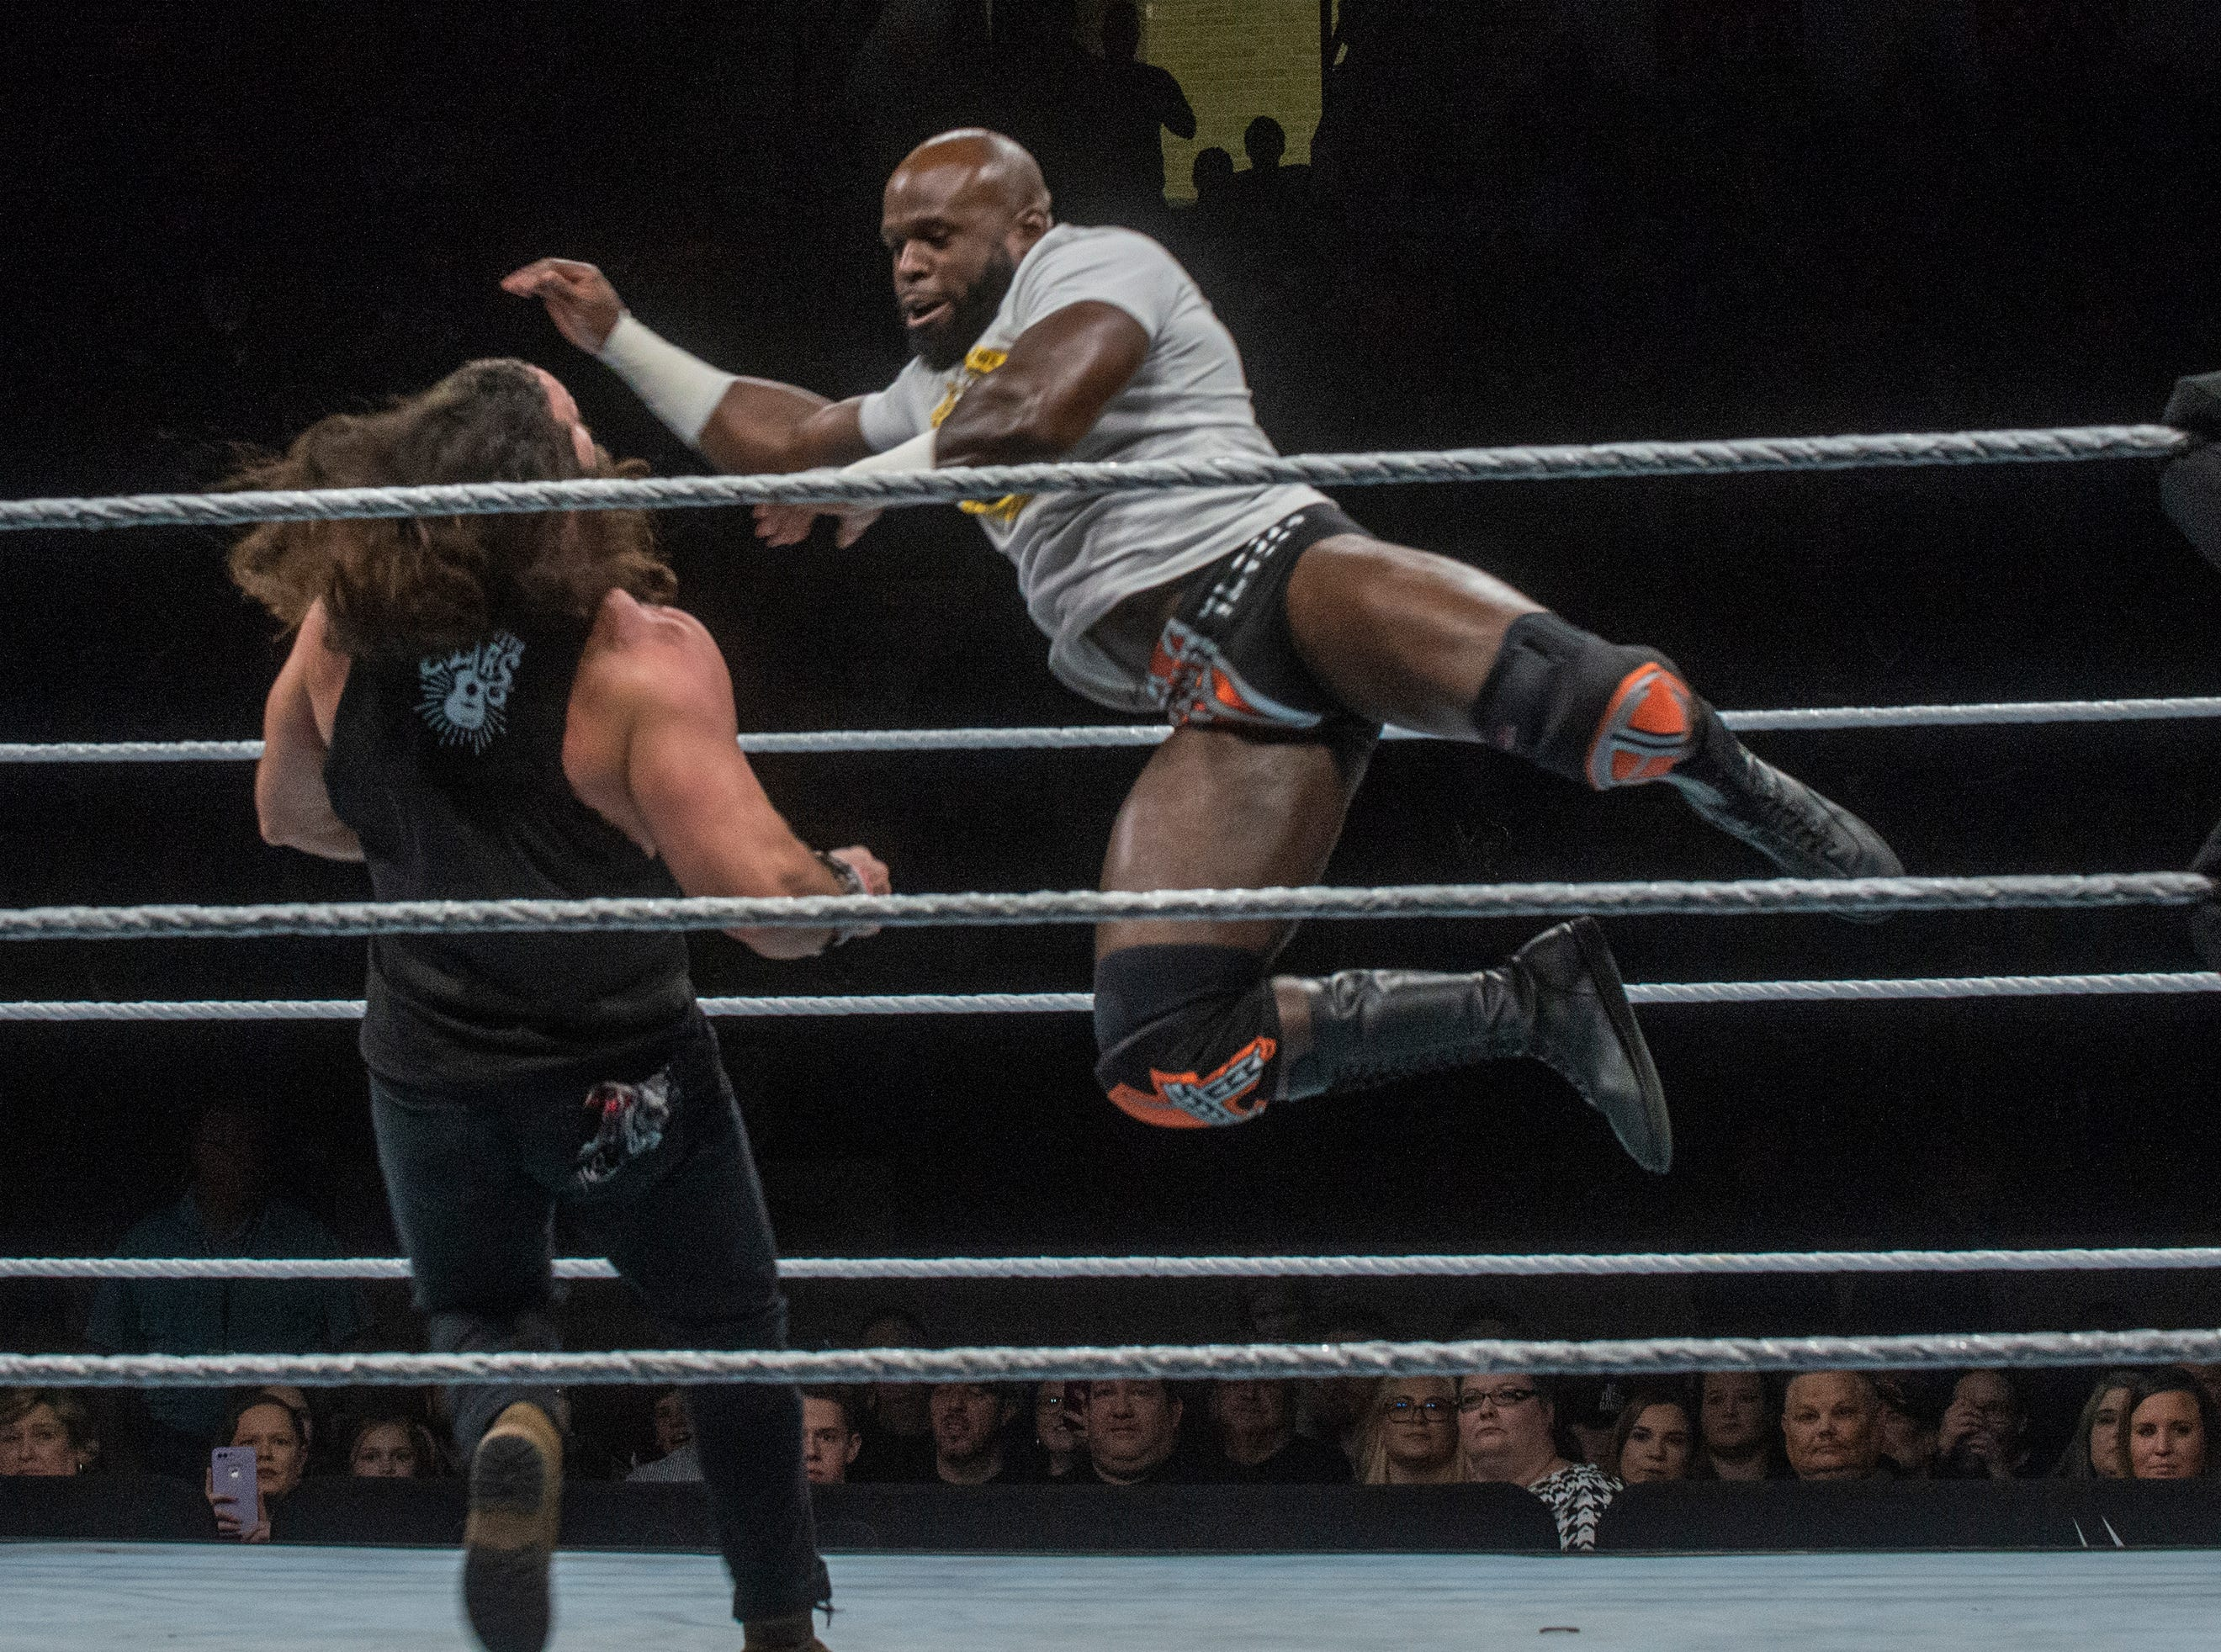 Elias takes a flying blow from Apollo Crews. WWE Live Road to Wrestlemania came to Garrett Coliseum in Montgomery on Sunday, Feb. 24, 2019.